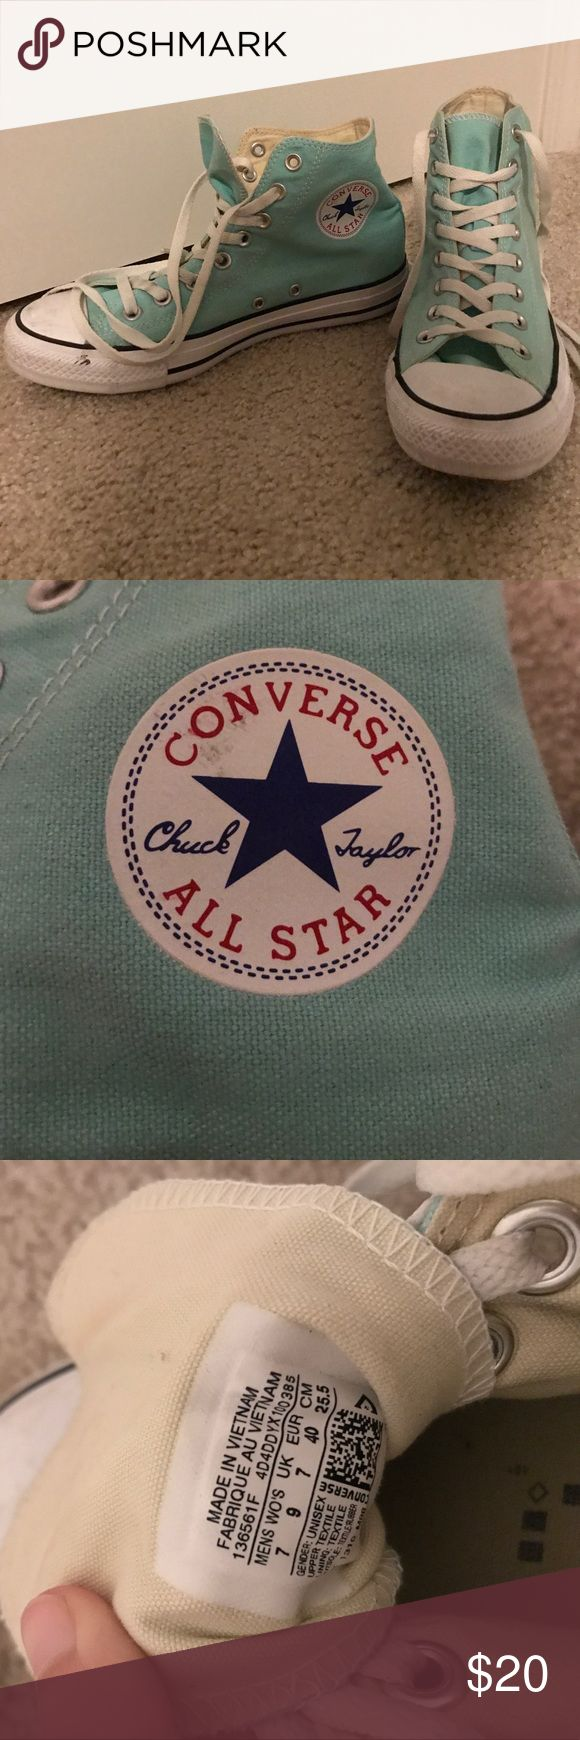 Mint Converse Hightops Worn only a few times, great condition! Converse Shoes Sneakers